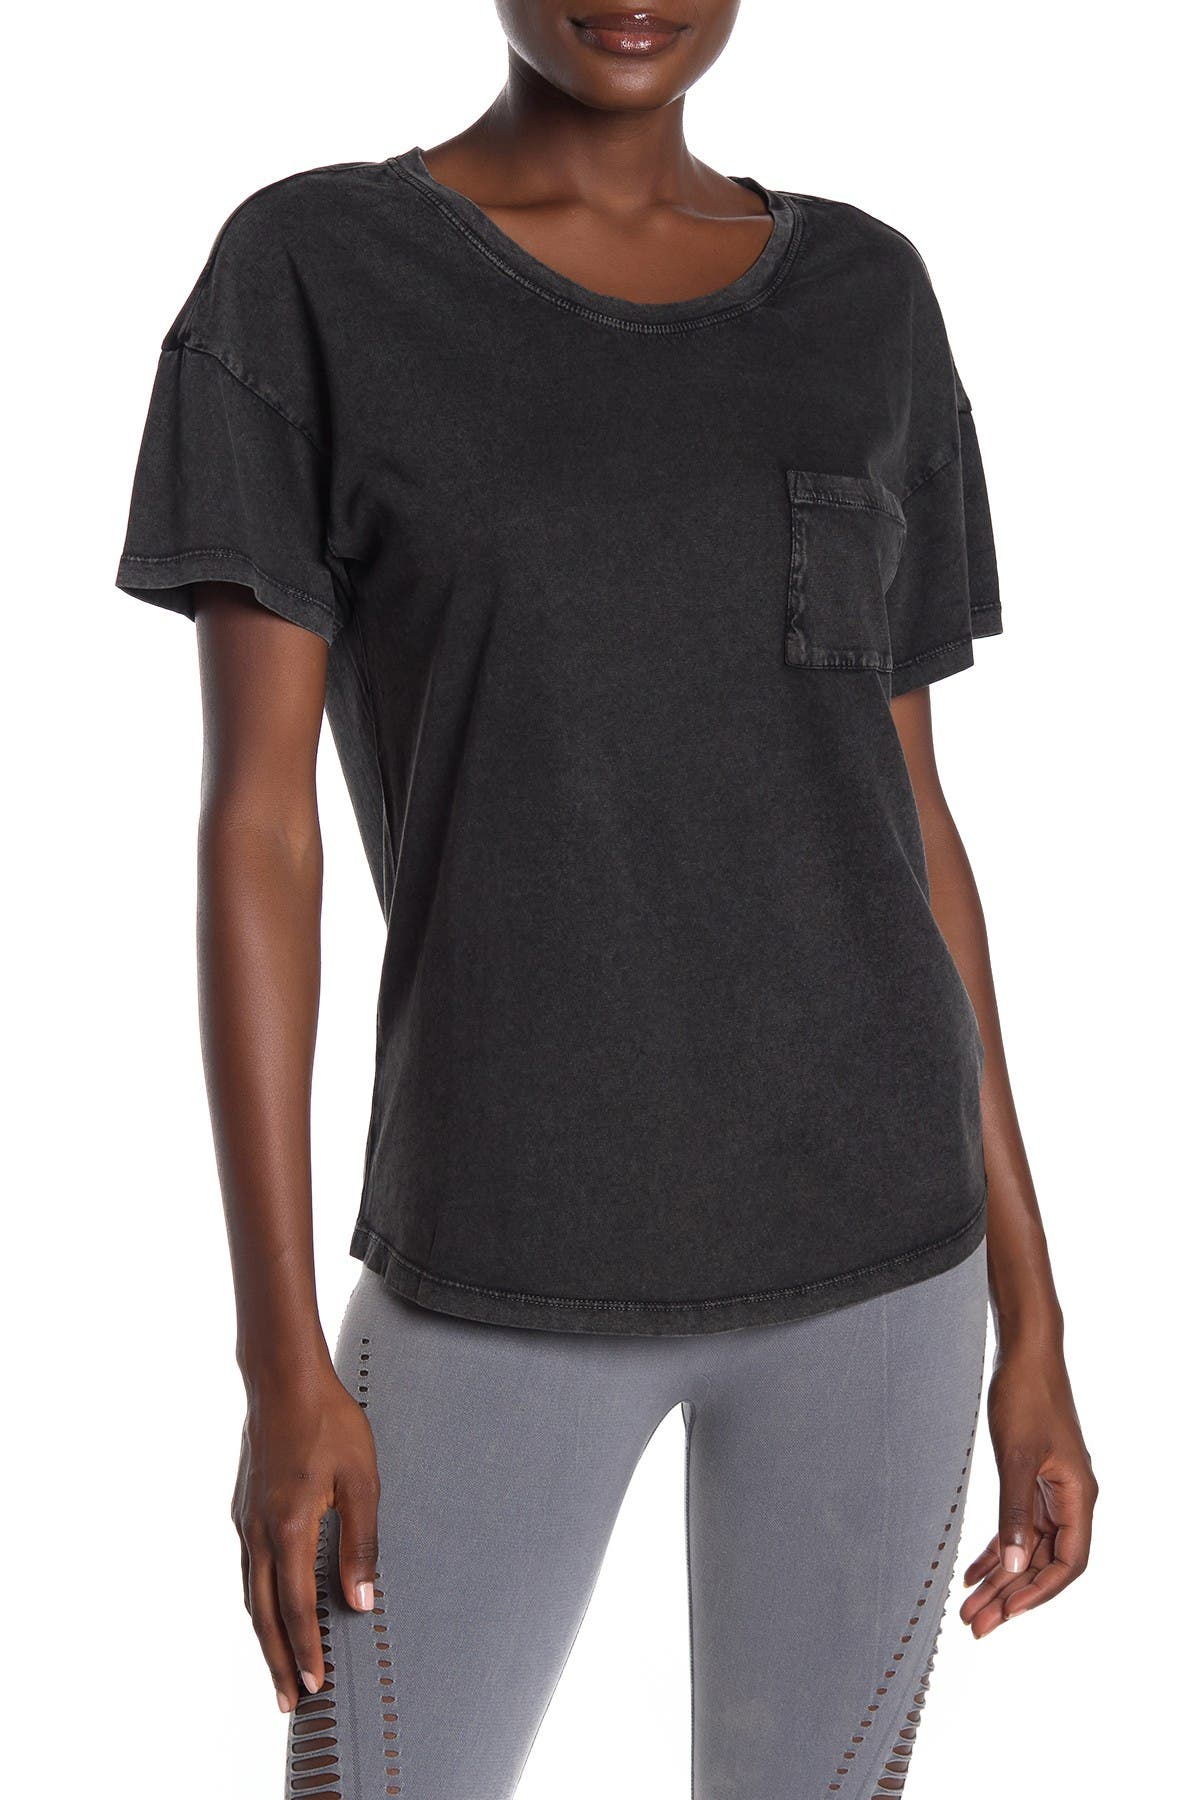 Image of Z By Zella Love Me Pocket T-Shirt